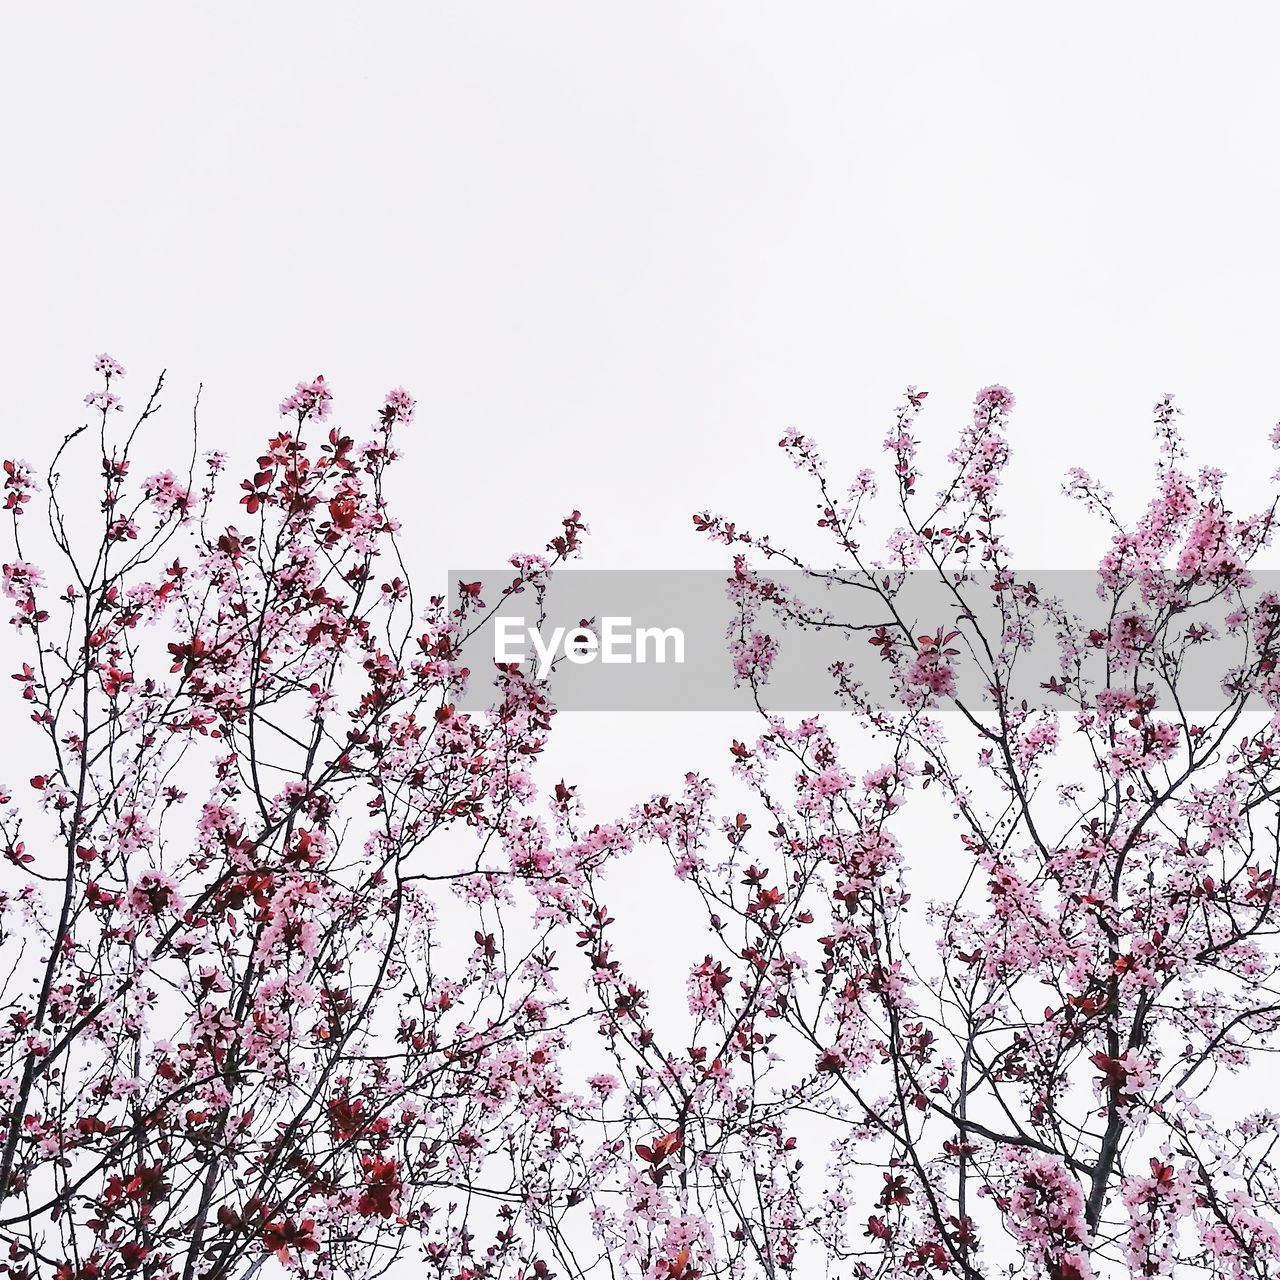 plant, sky, low angle view, tree, beauty in nature, growth, flower, branch, flowering plant, clear sky, nature, no people, day, tranquility, blossom, copy space, pink color, springtime, freshness, fragility, outdoors, cherry blossom, cherry tree, spring